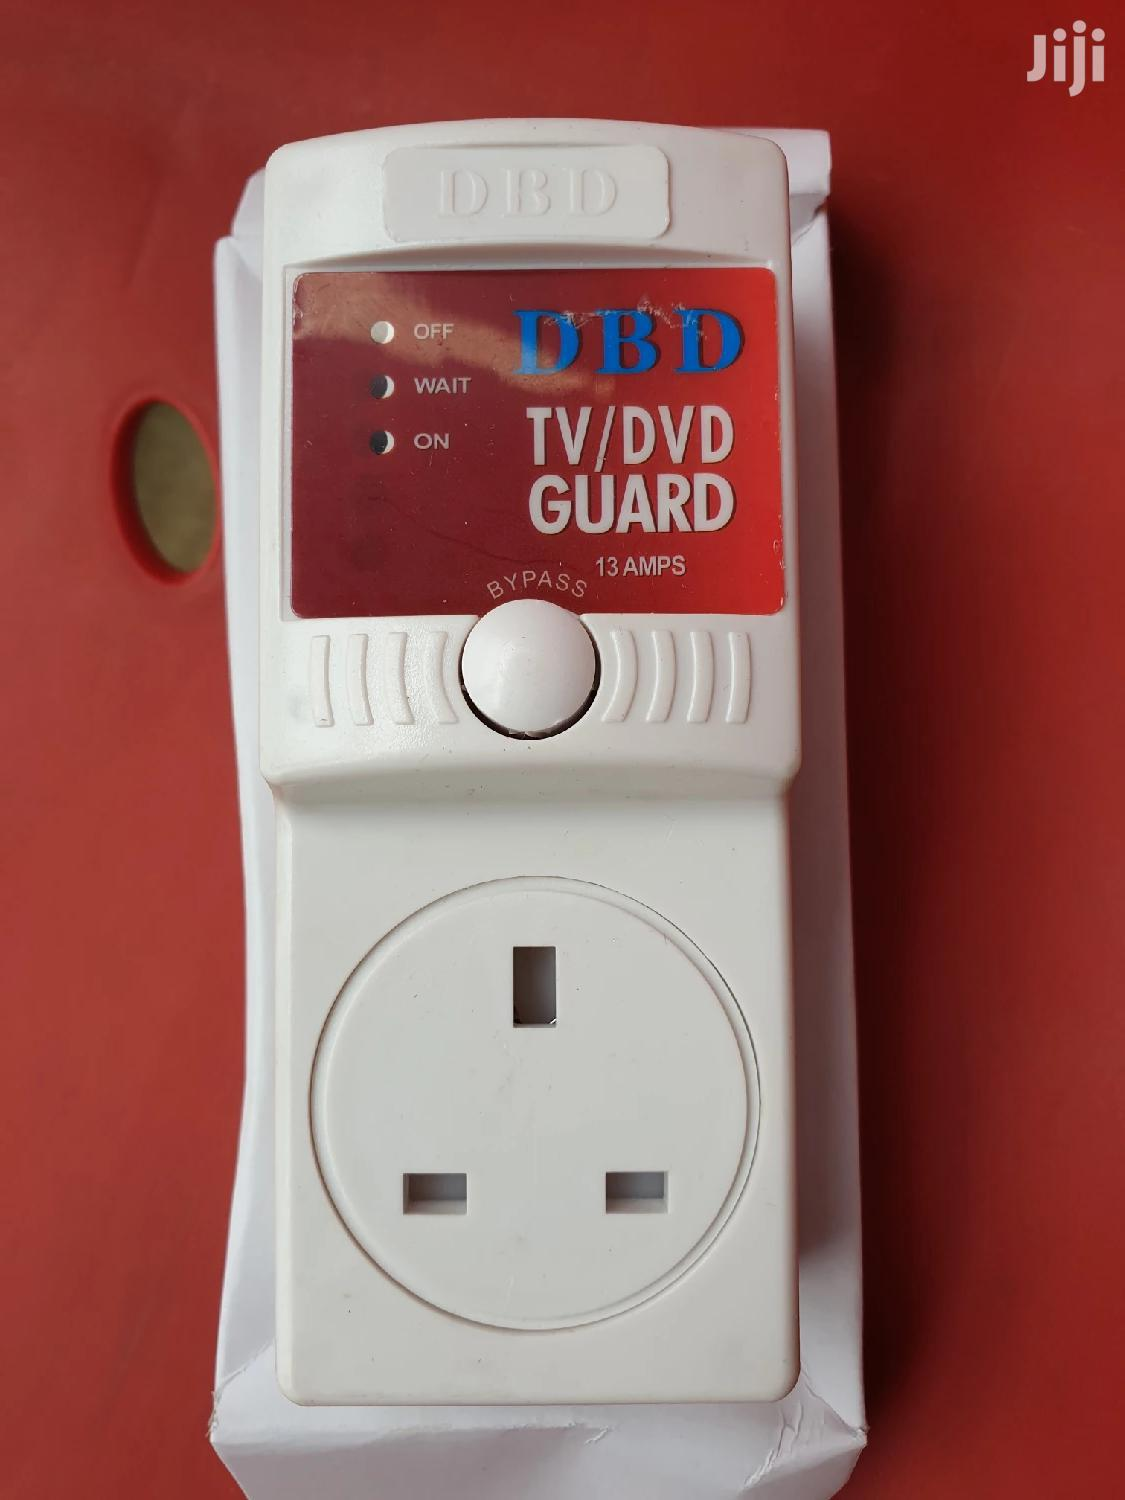 TV Guard For Cool Price